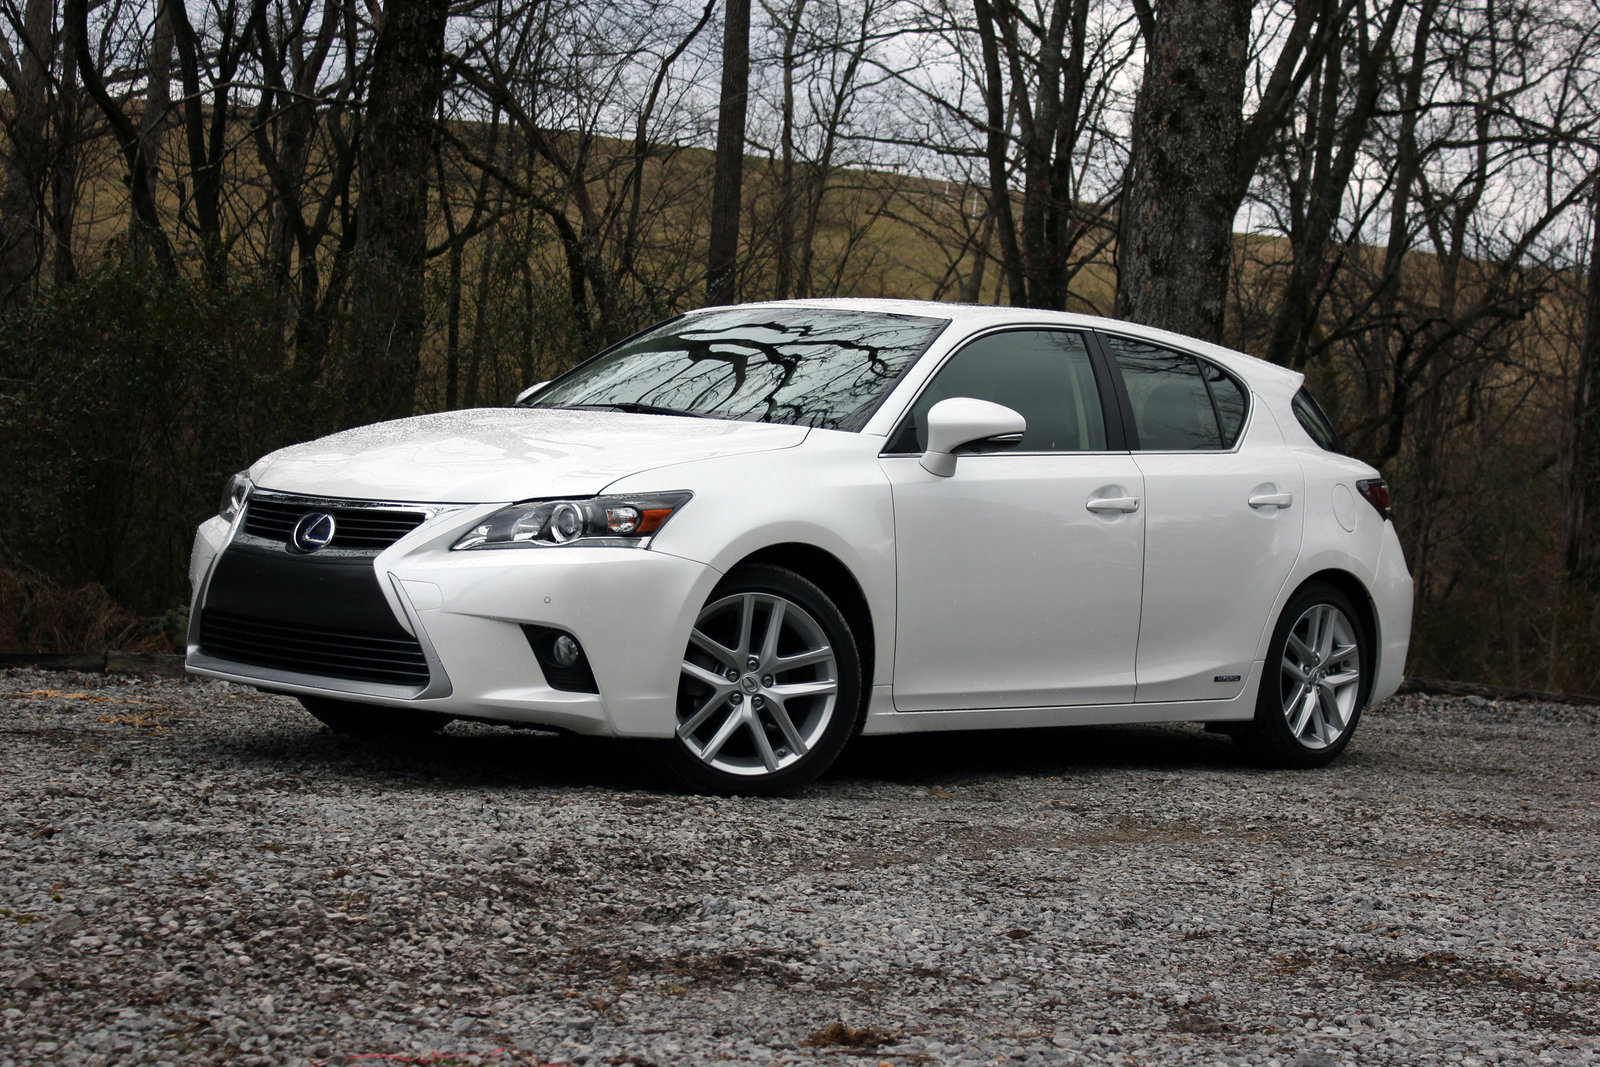 2015 lexus ct 200h driven picture 615193 car review top speed. Black Bedroom Furniture Sets. Home Design Ideas